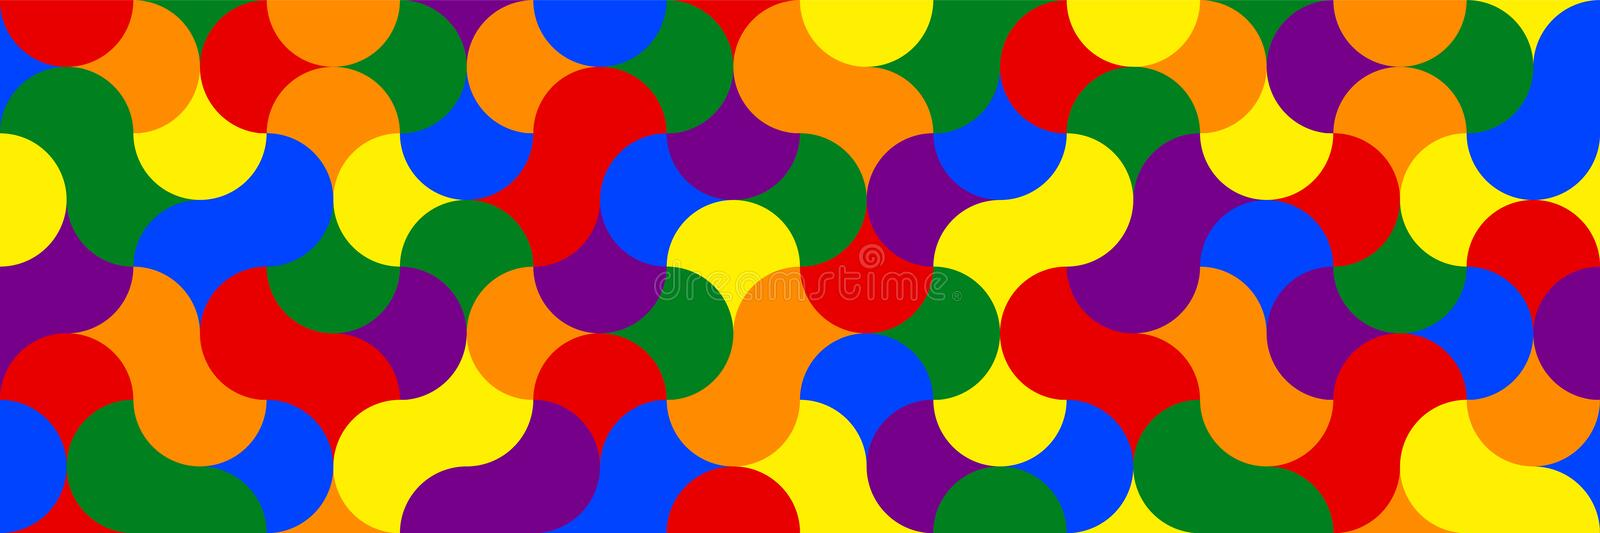 Widescreen geometric background in rainbow colors. stock illustration